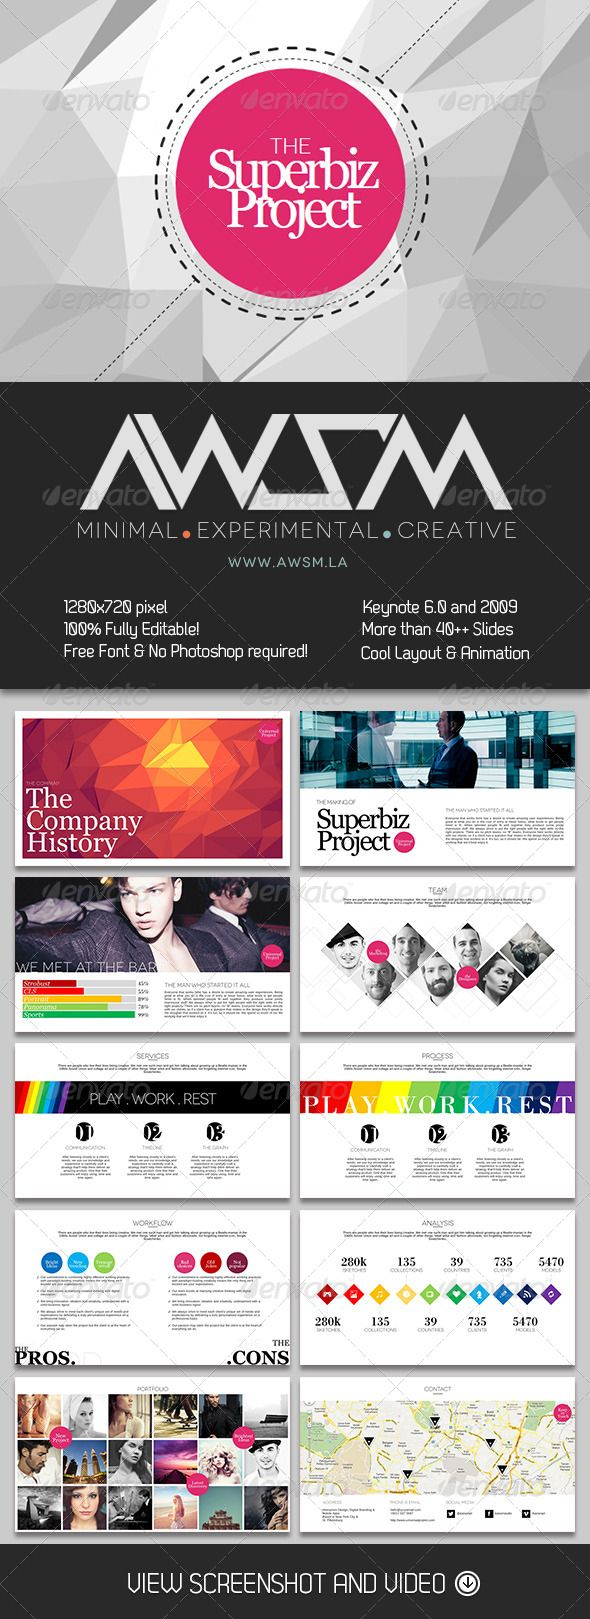 62 best ppt template images on pinterest ppt template the superbiz powerpoint presentation template by awsm is a highly visual layout with lots of white space for readability toneelgroepblik